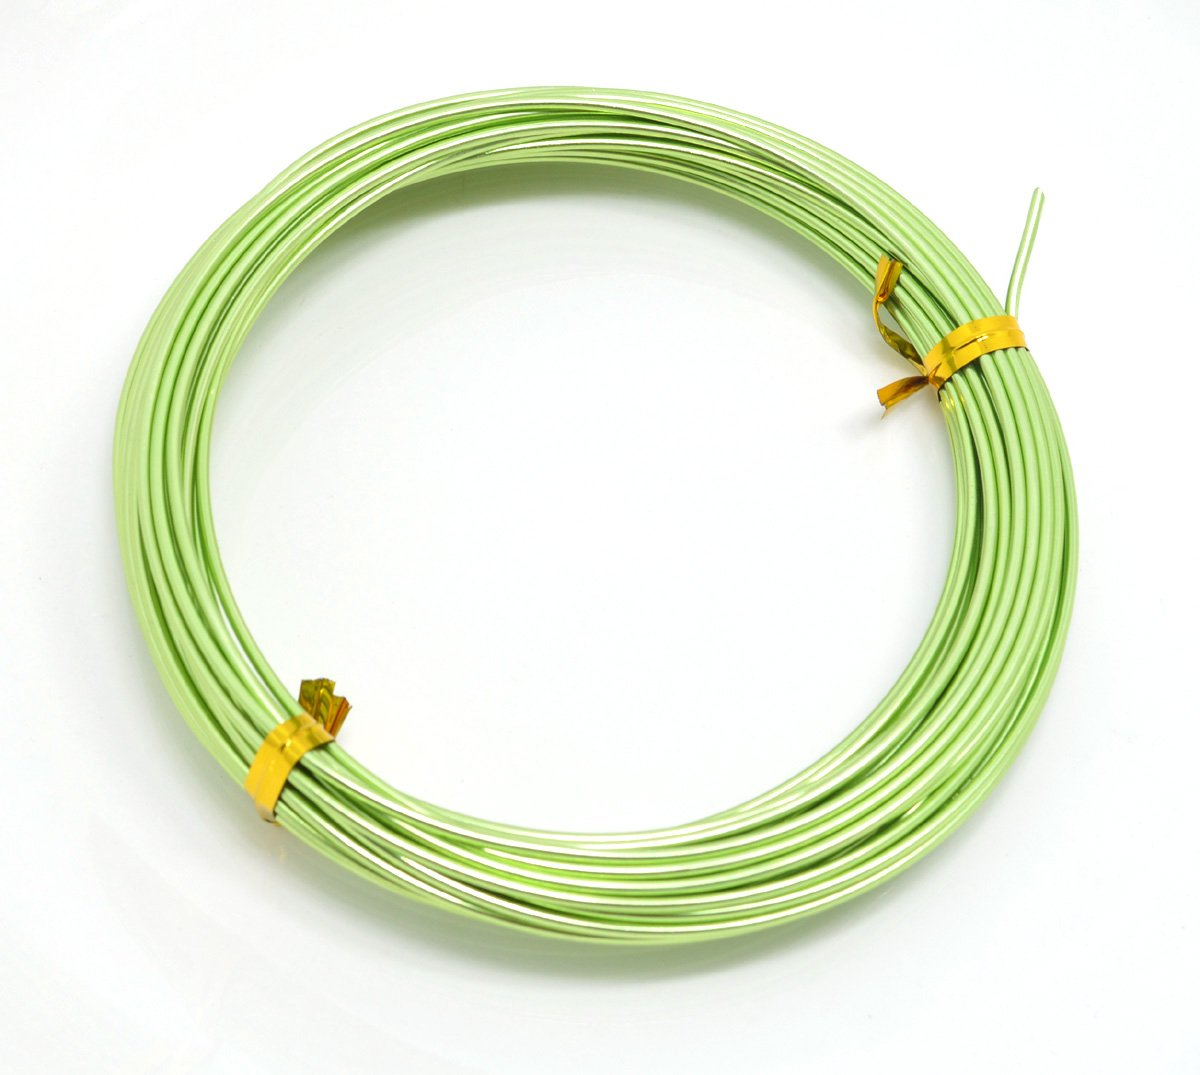 TD CRAFTS 0.8mm x 10 Metres Aluminium Craft Wire Jewellery Modelling Florist Wire Findings GRASS GREEN